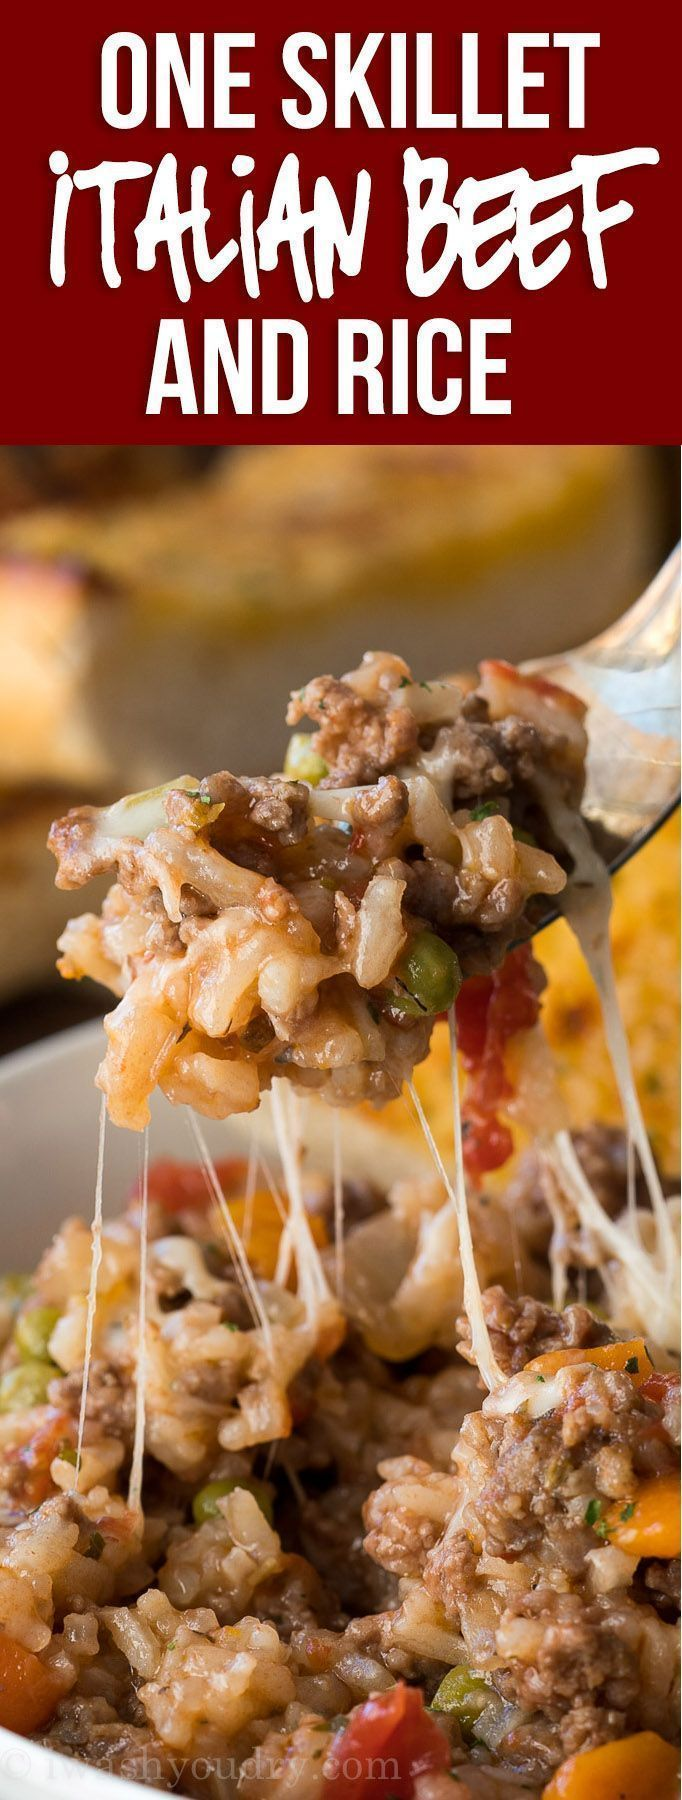 Italian Beef And Rice Skillet Recipe Beef Recipes Easy Beef Recipes For Dinner Recipes